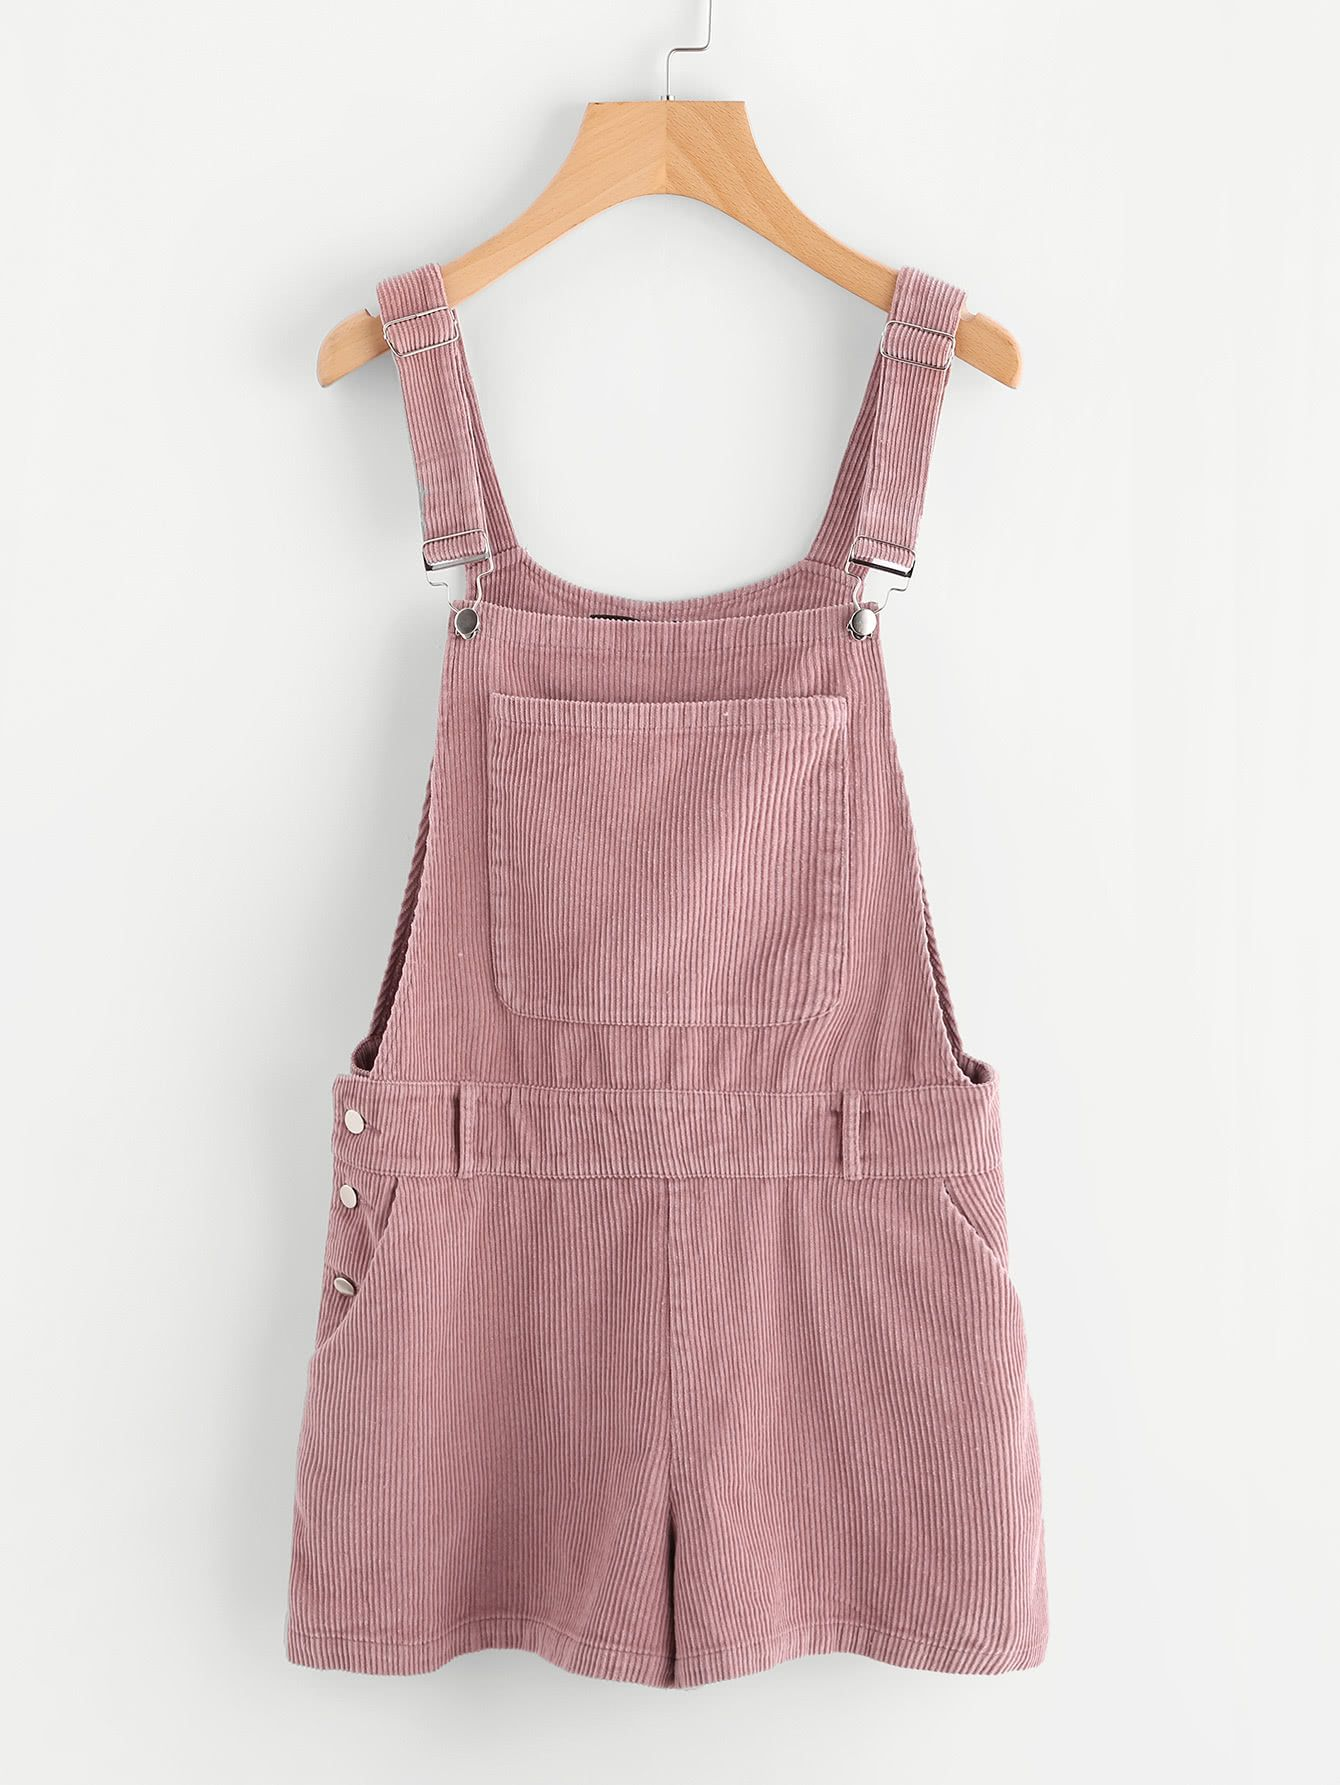 caa25024e8 Shop Bib Pocket Front Cord Overall Shorts online. SheIn offers Bib Pocket  Front Cord Overall Shorts   more to fit your fashionable needs.